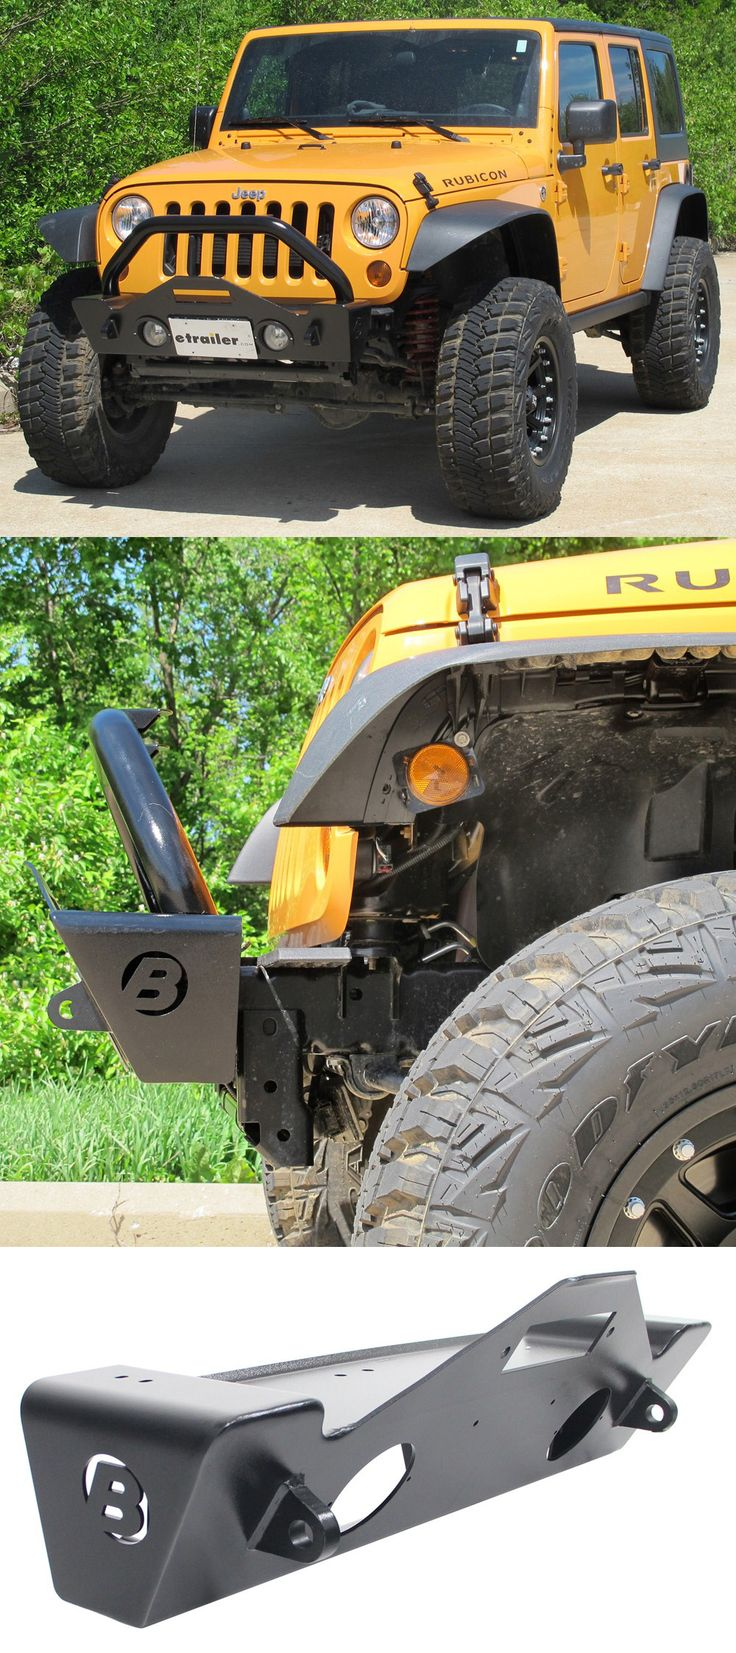 Narrow jeep wrangler bumper features tapered ends that ensure maximum tire clearance provides protection for